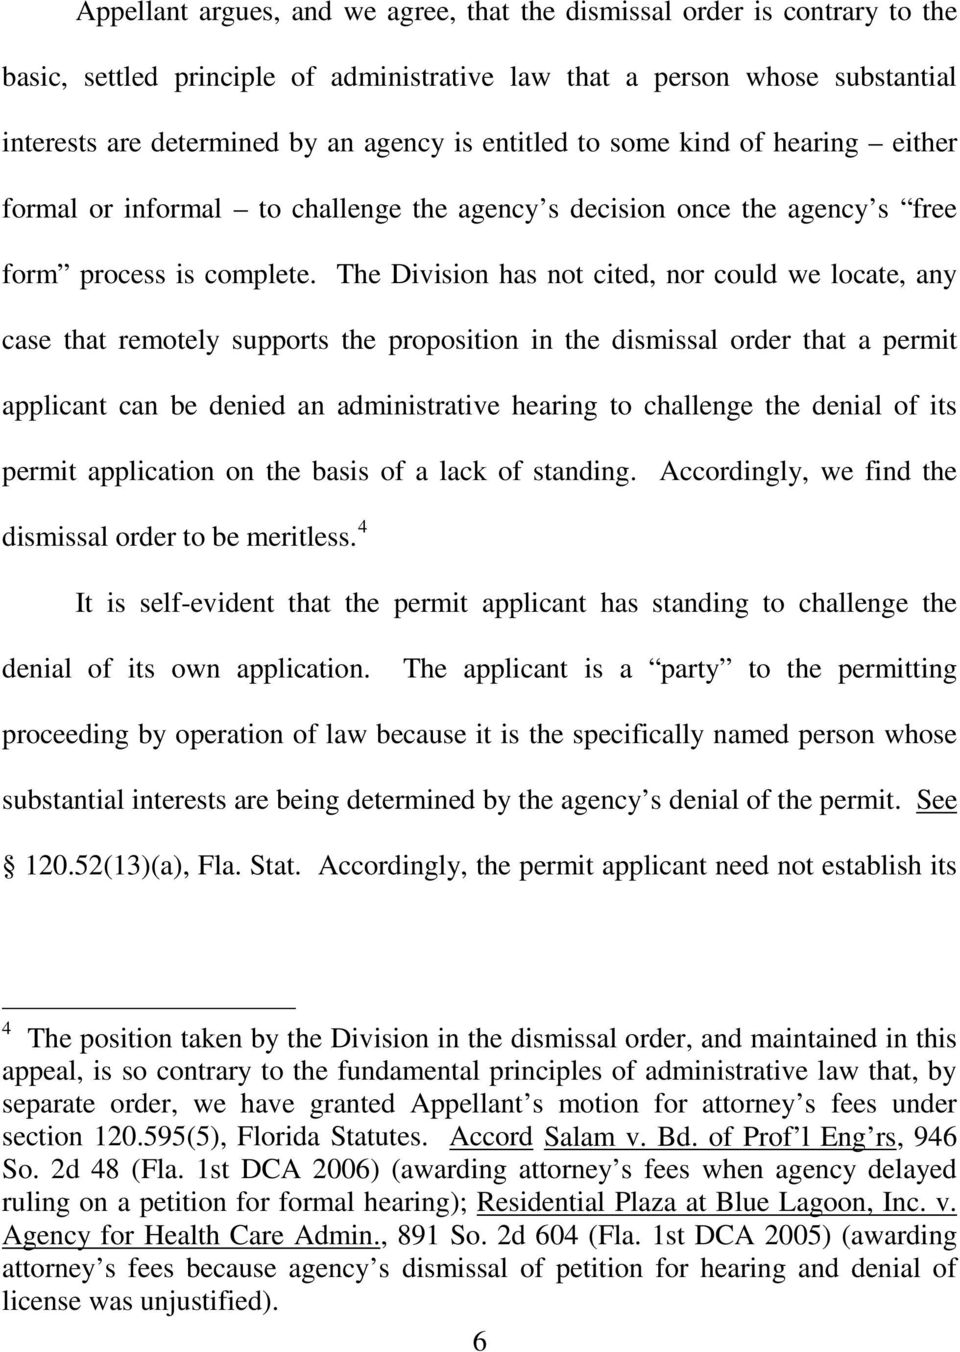 The Division has not cited, nor could we locate, any case that remotely supports the proposition in the dismissal order that a permit applicant can be denied an administrative hearing to challenge